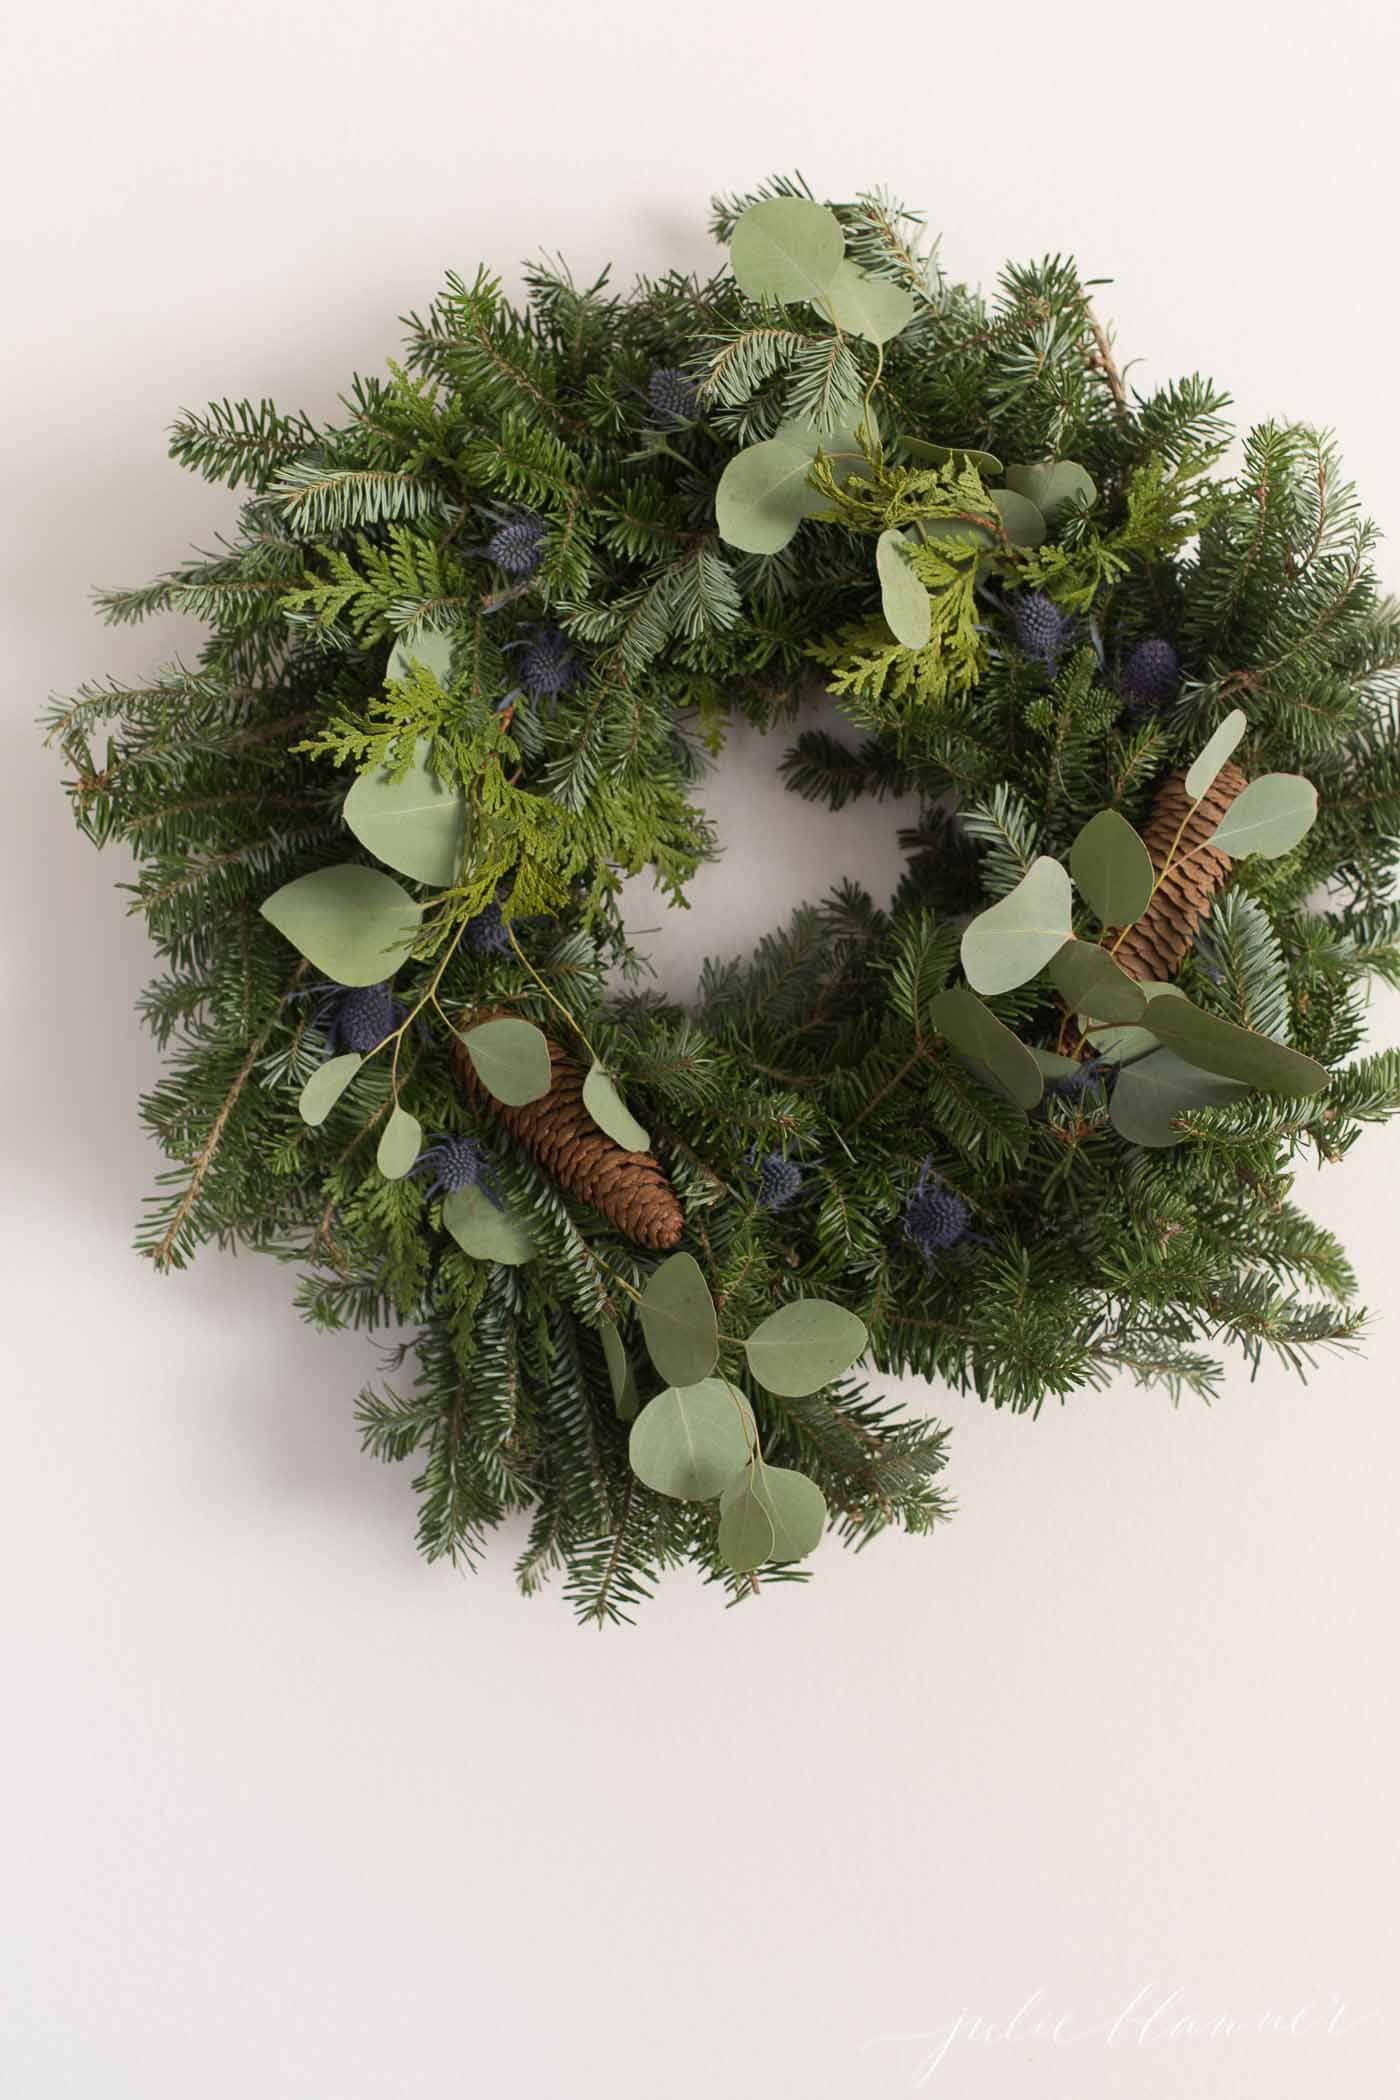 Fresh evergreen christmas wreath on a white wall.